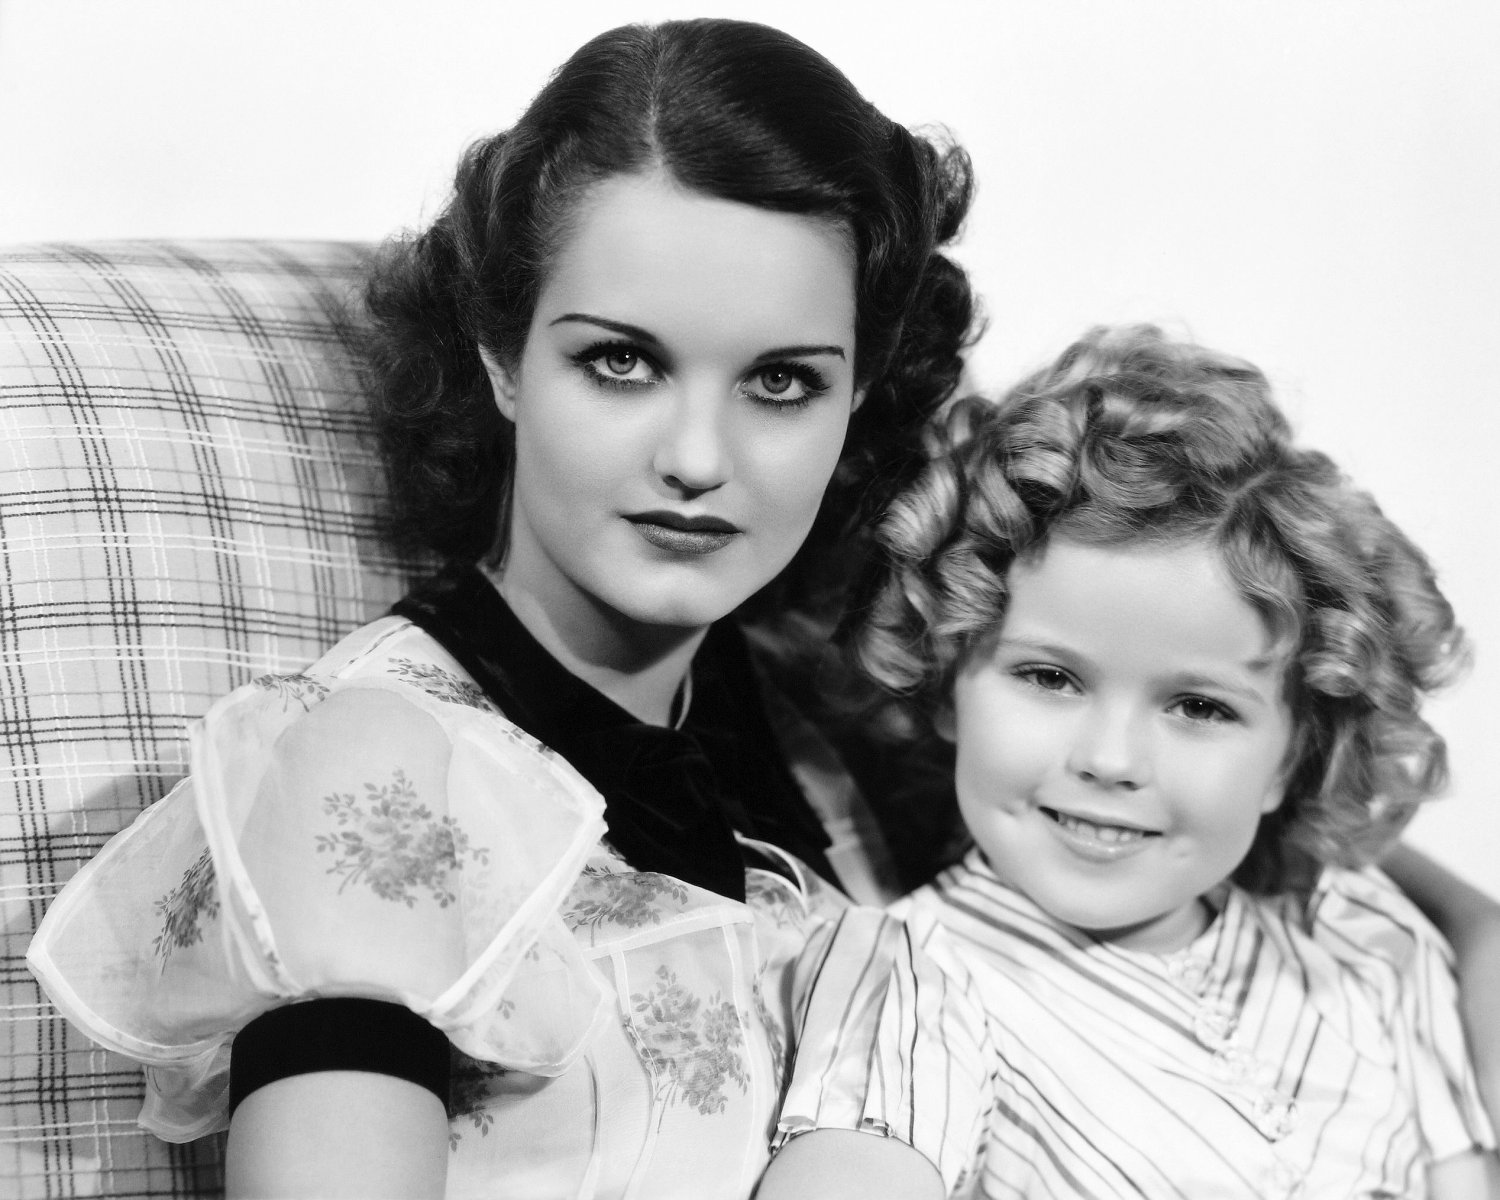 SHIRLEY TEMPLE & ROCHELLE HUDSON IN 'CURLY TOP' - 8X10 PUBLICITY PHOTO (AZ-017)